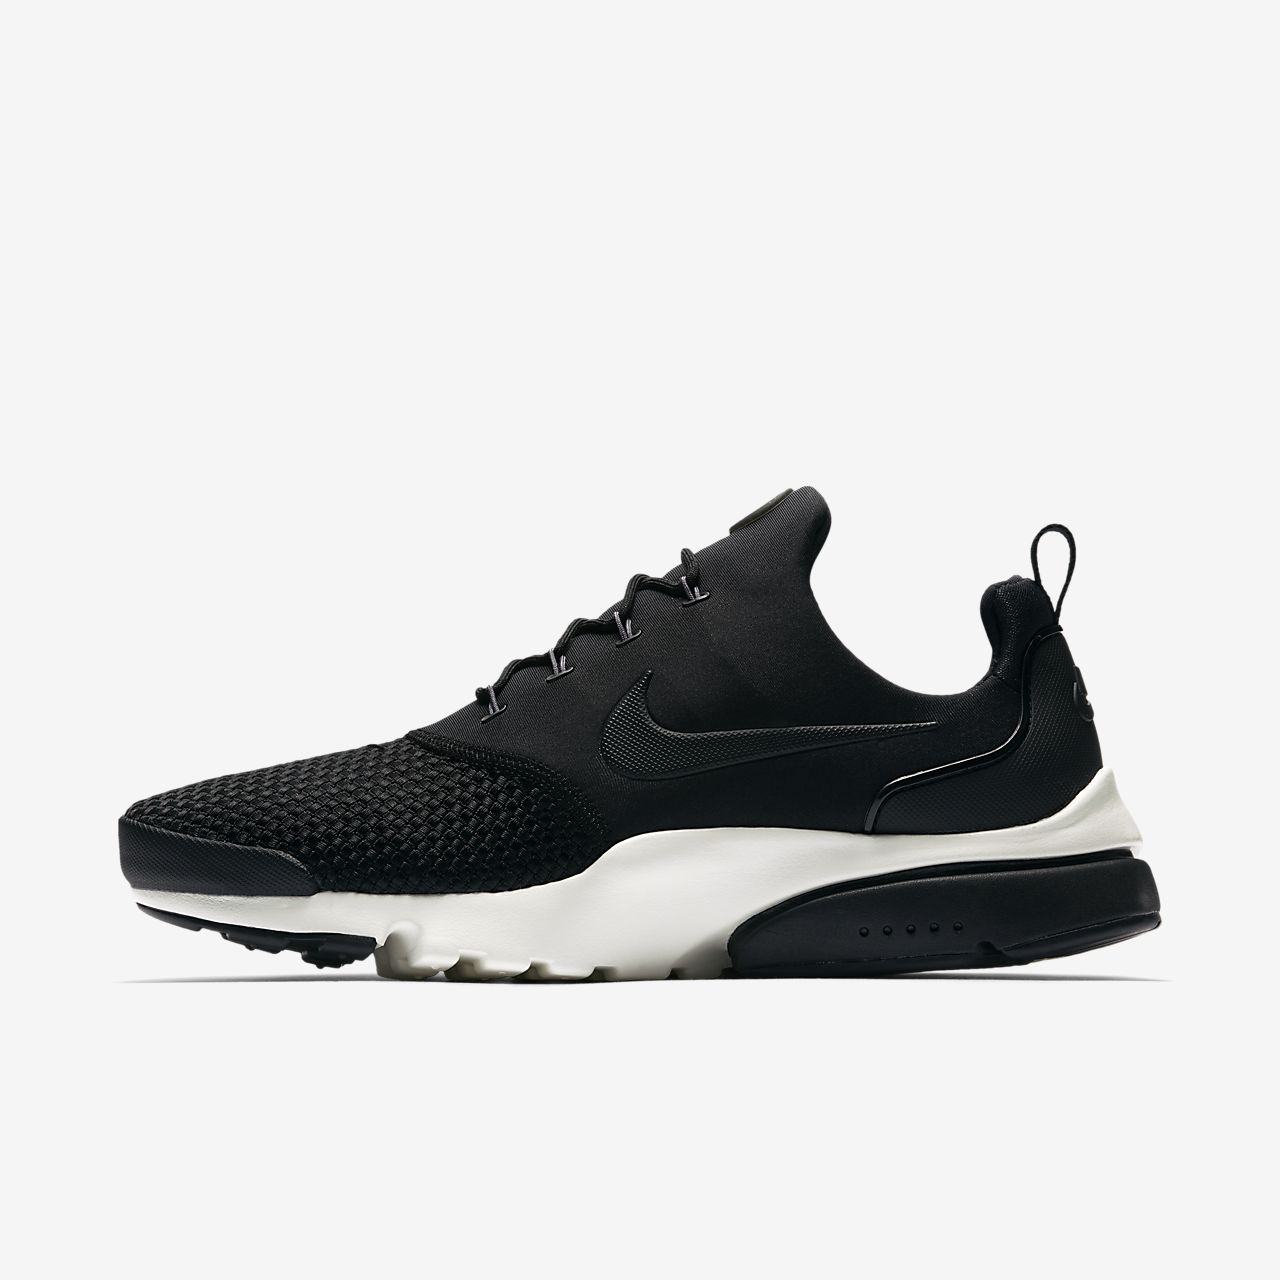 Marques Chaussure homme Nike homme Nike Presto Fly Black/white-black